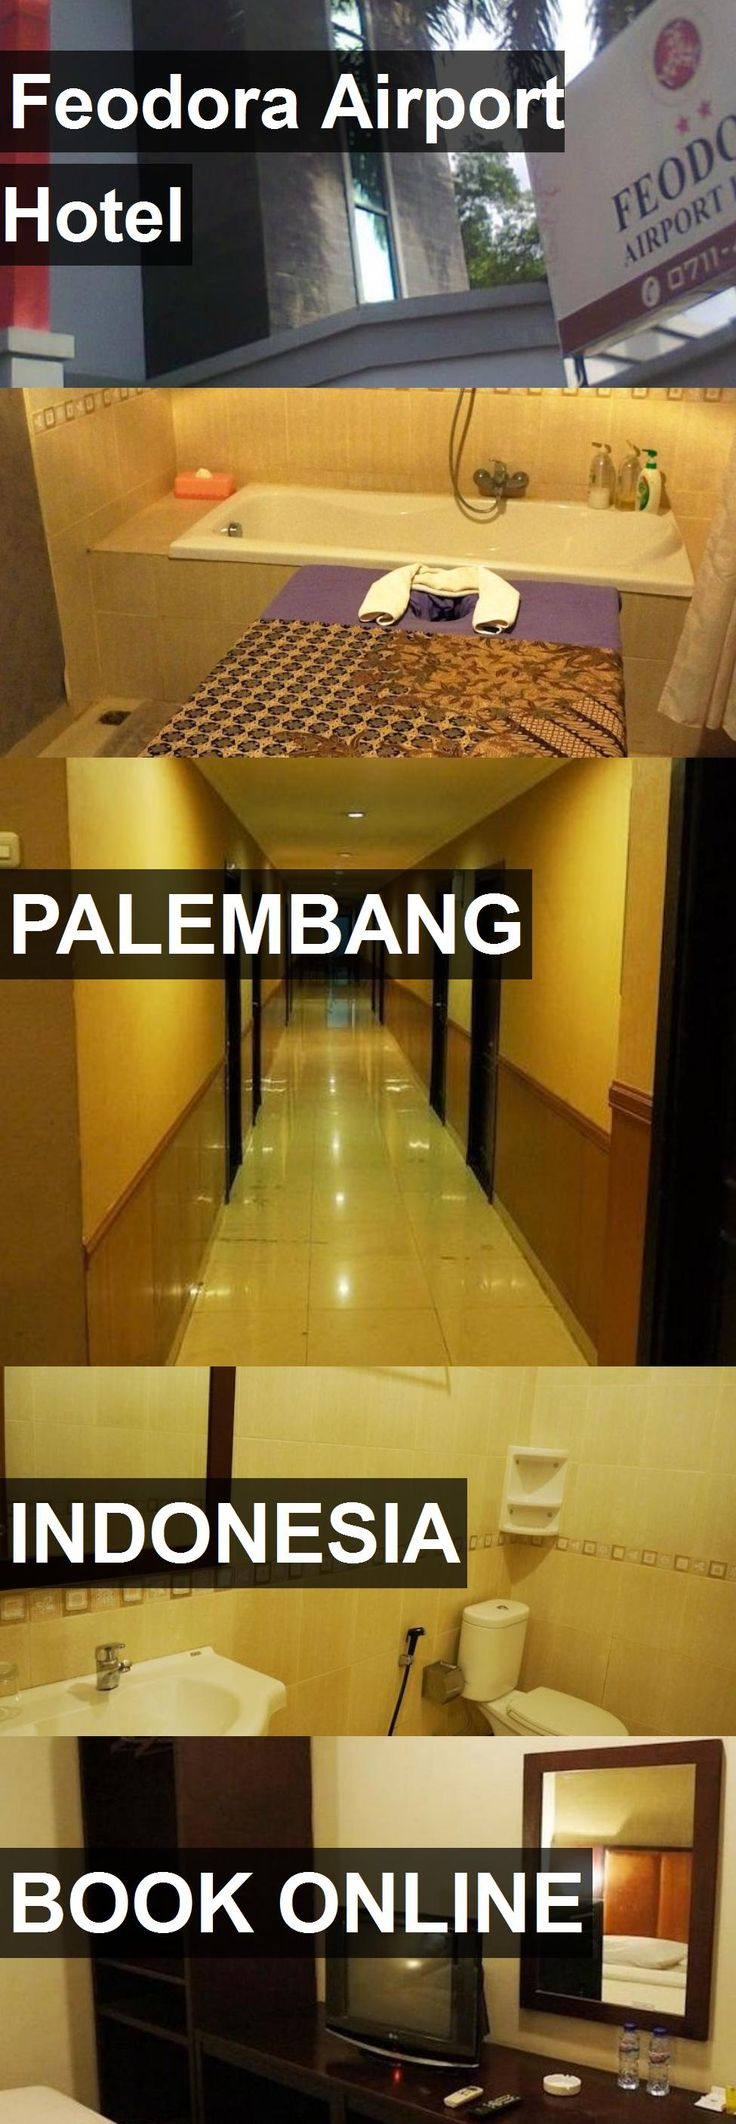 Feodora Airport Hotel in Palembang, Indonesia. For more information, photos, reviews and best prices please follow the link. #Indonesia #Palembang #travel #vacation #hotel